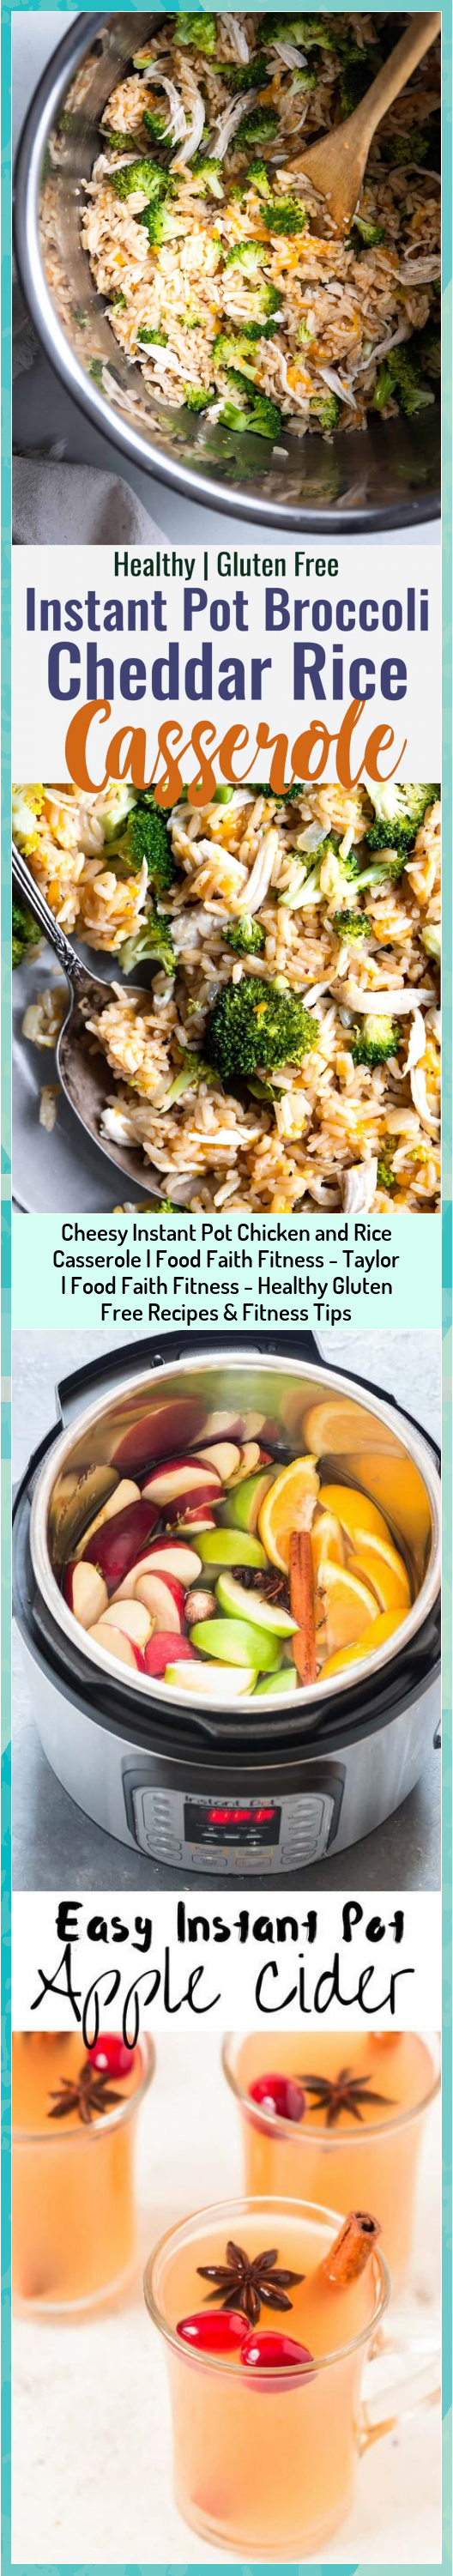 Cheesy Instant Pot Chicken and Rice Casserole   Food Faith Fitness - Taylor   Food Faith Fitness - H...